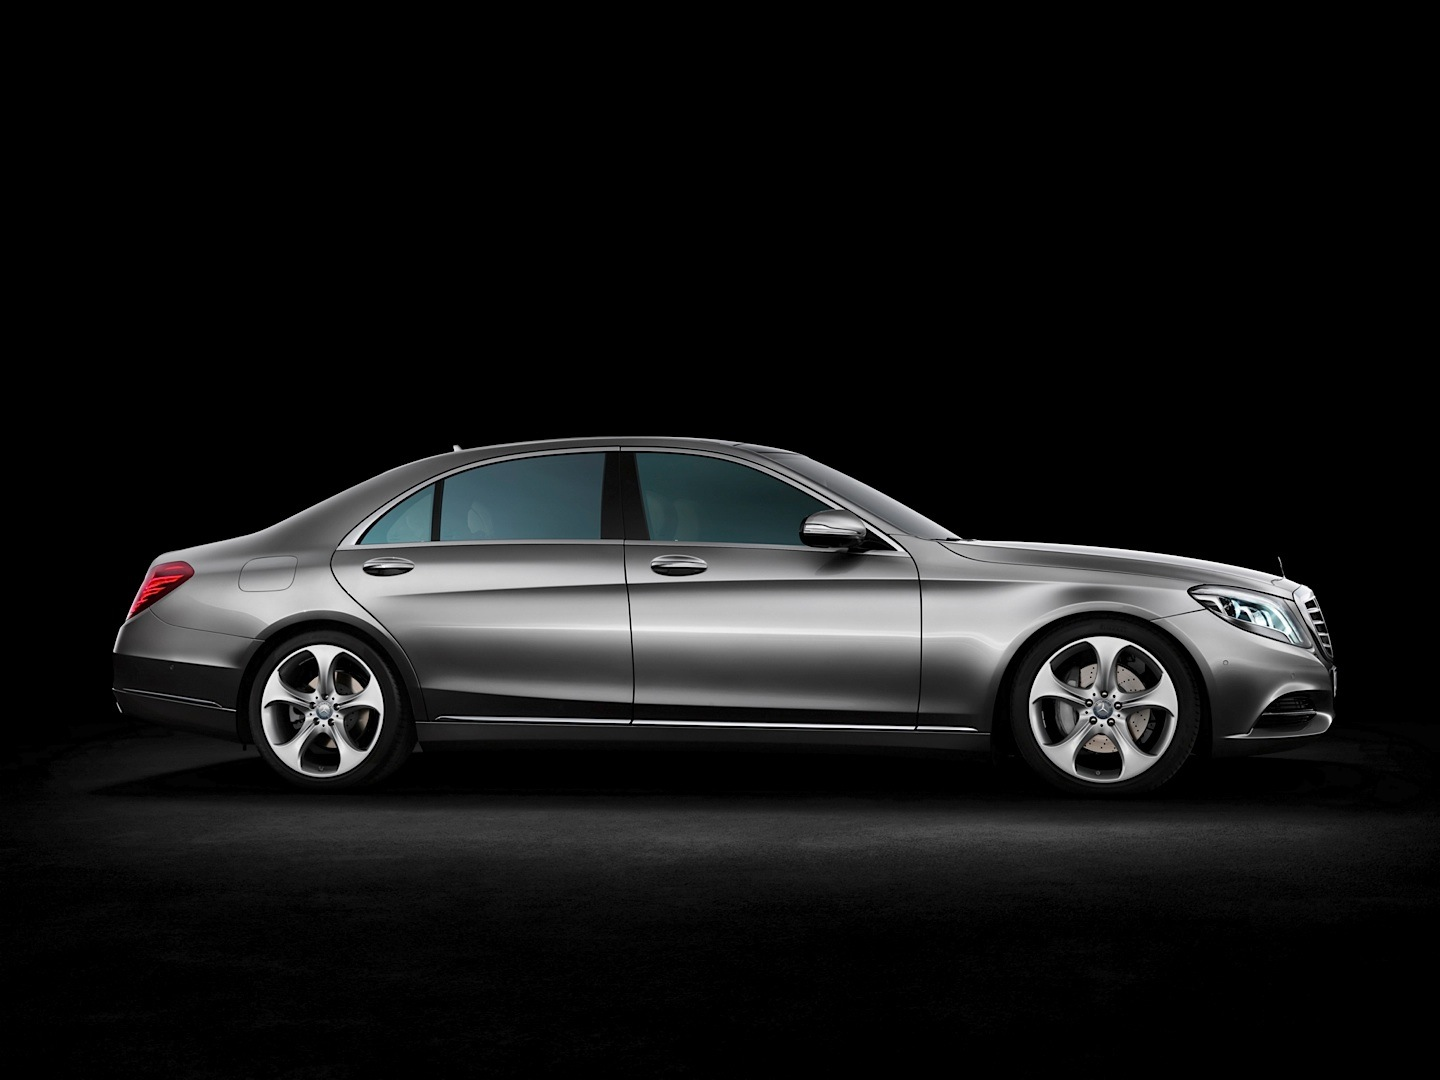 Mercedes benz s350 bluetec review by car autoevolution for Mercedes benz s350 bluetec